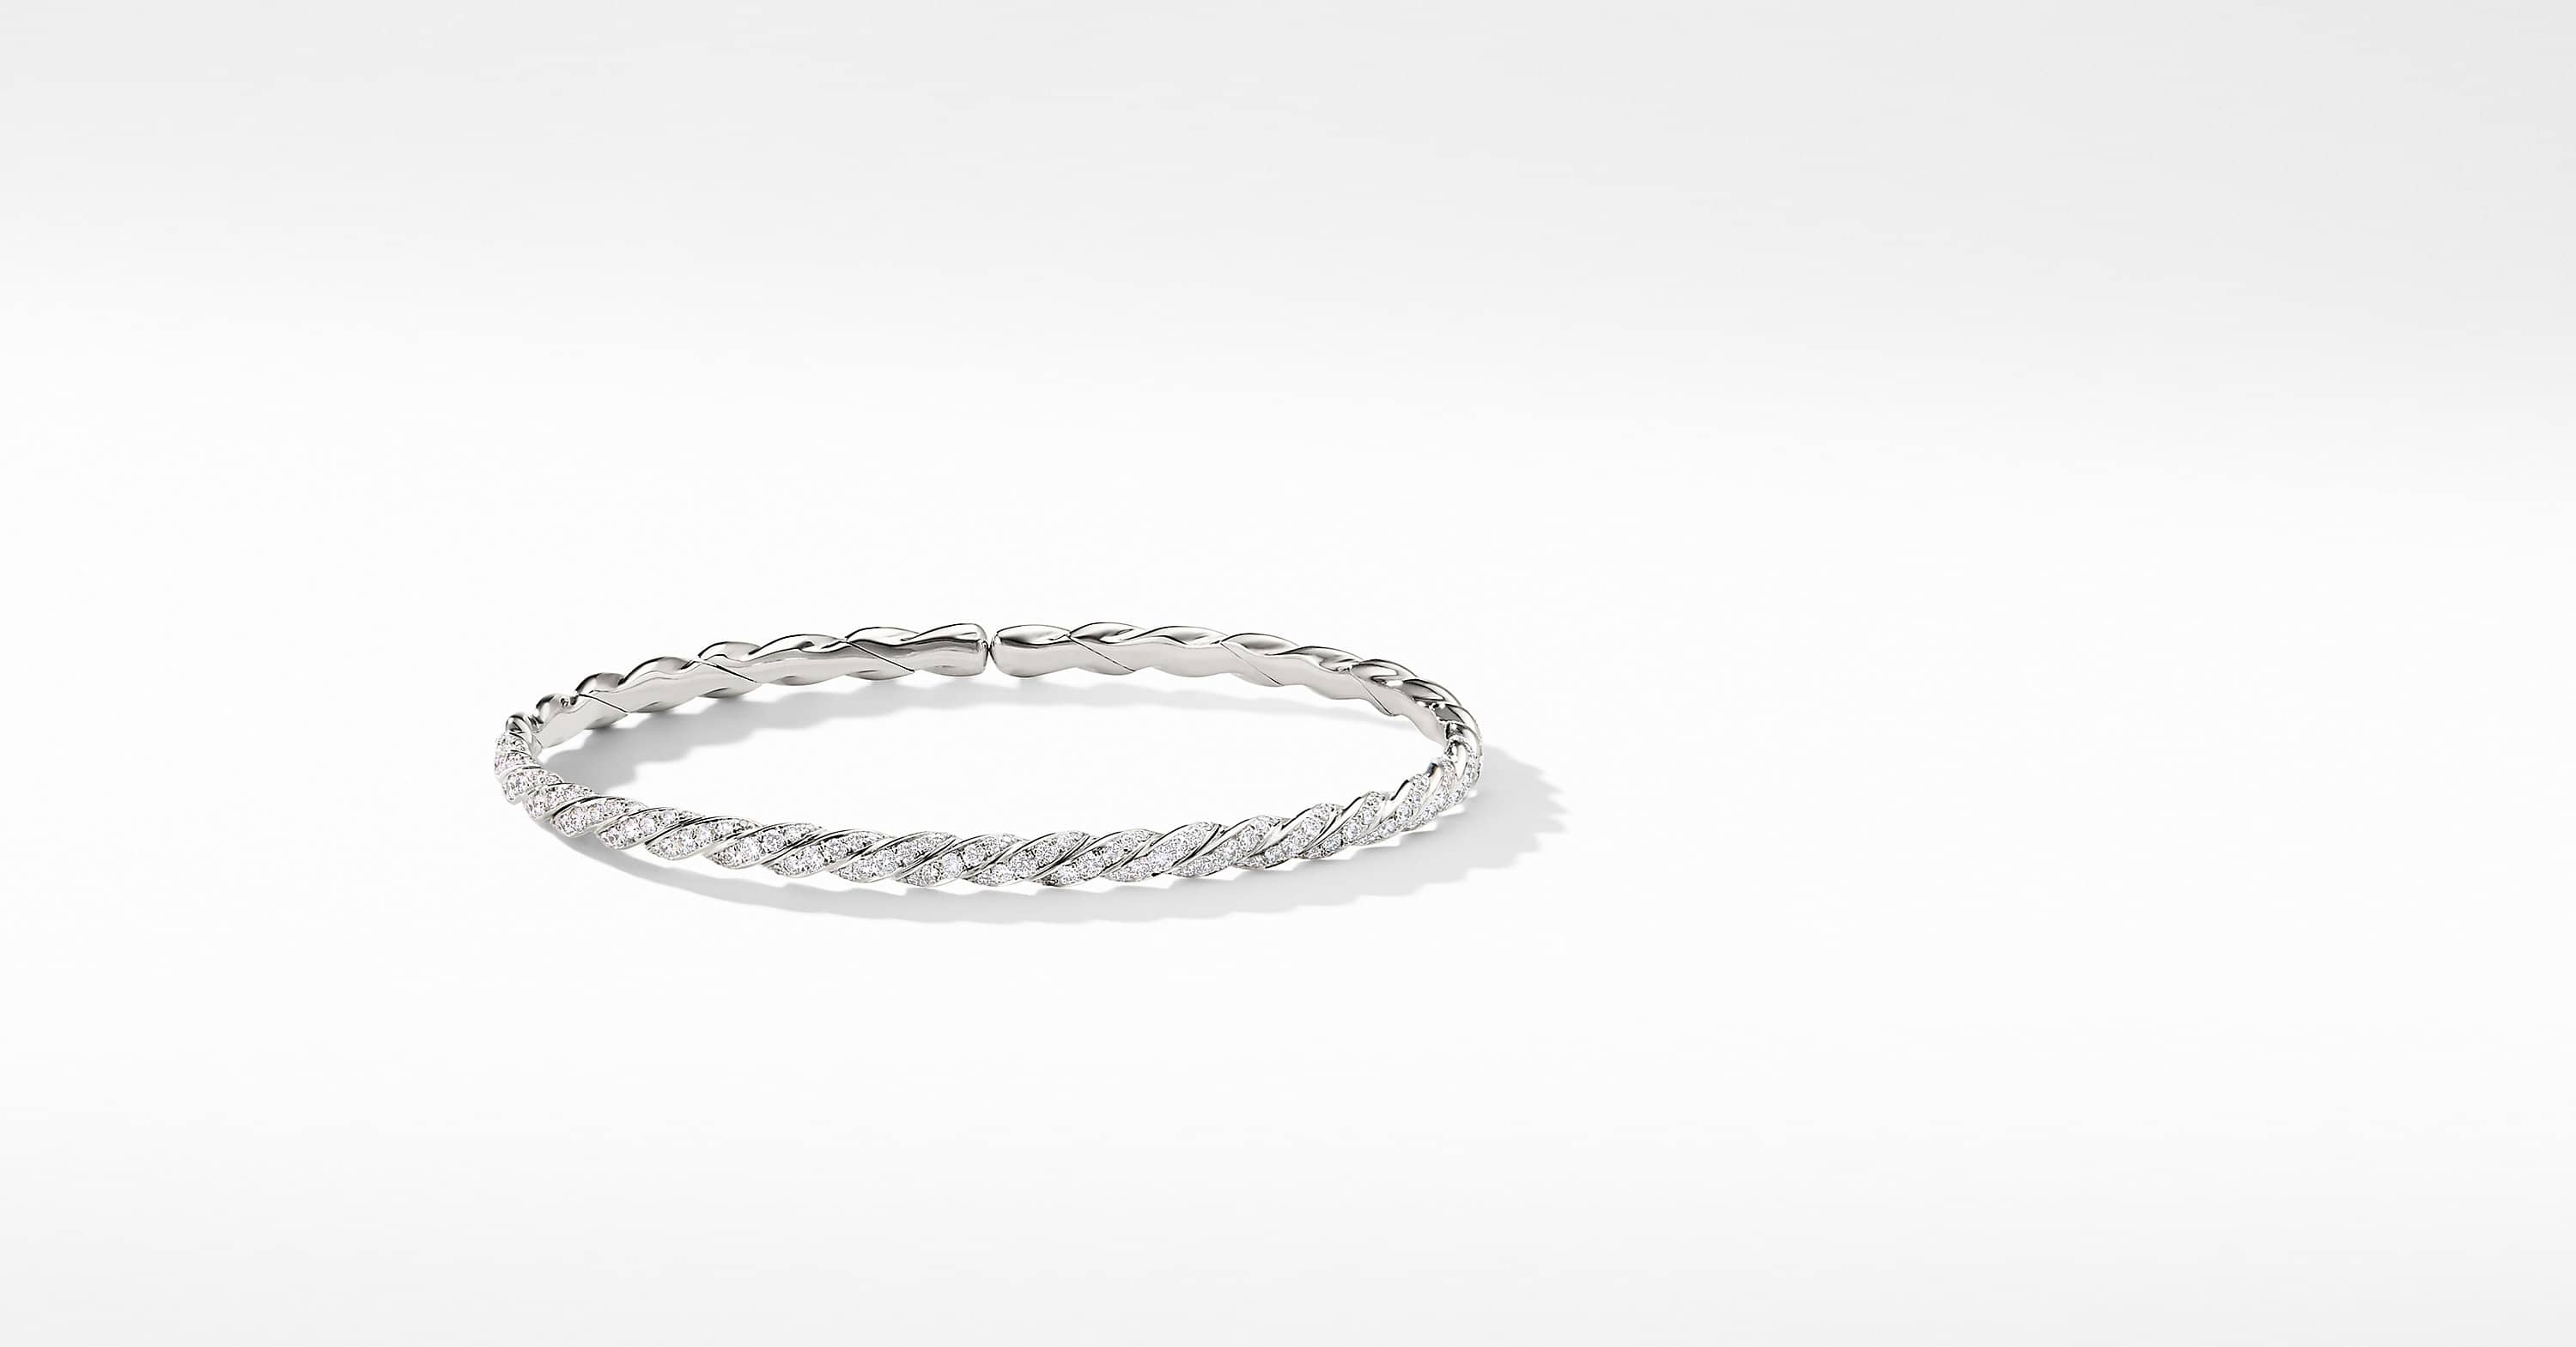 Bracelet Pavéflex à rang simple en or blanc 18 carats et diamants